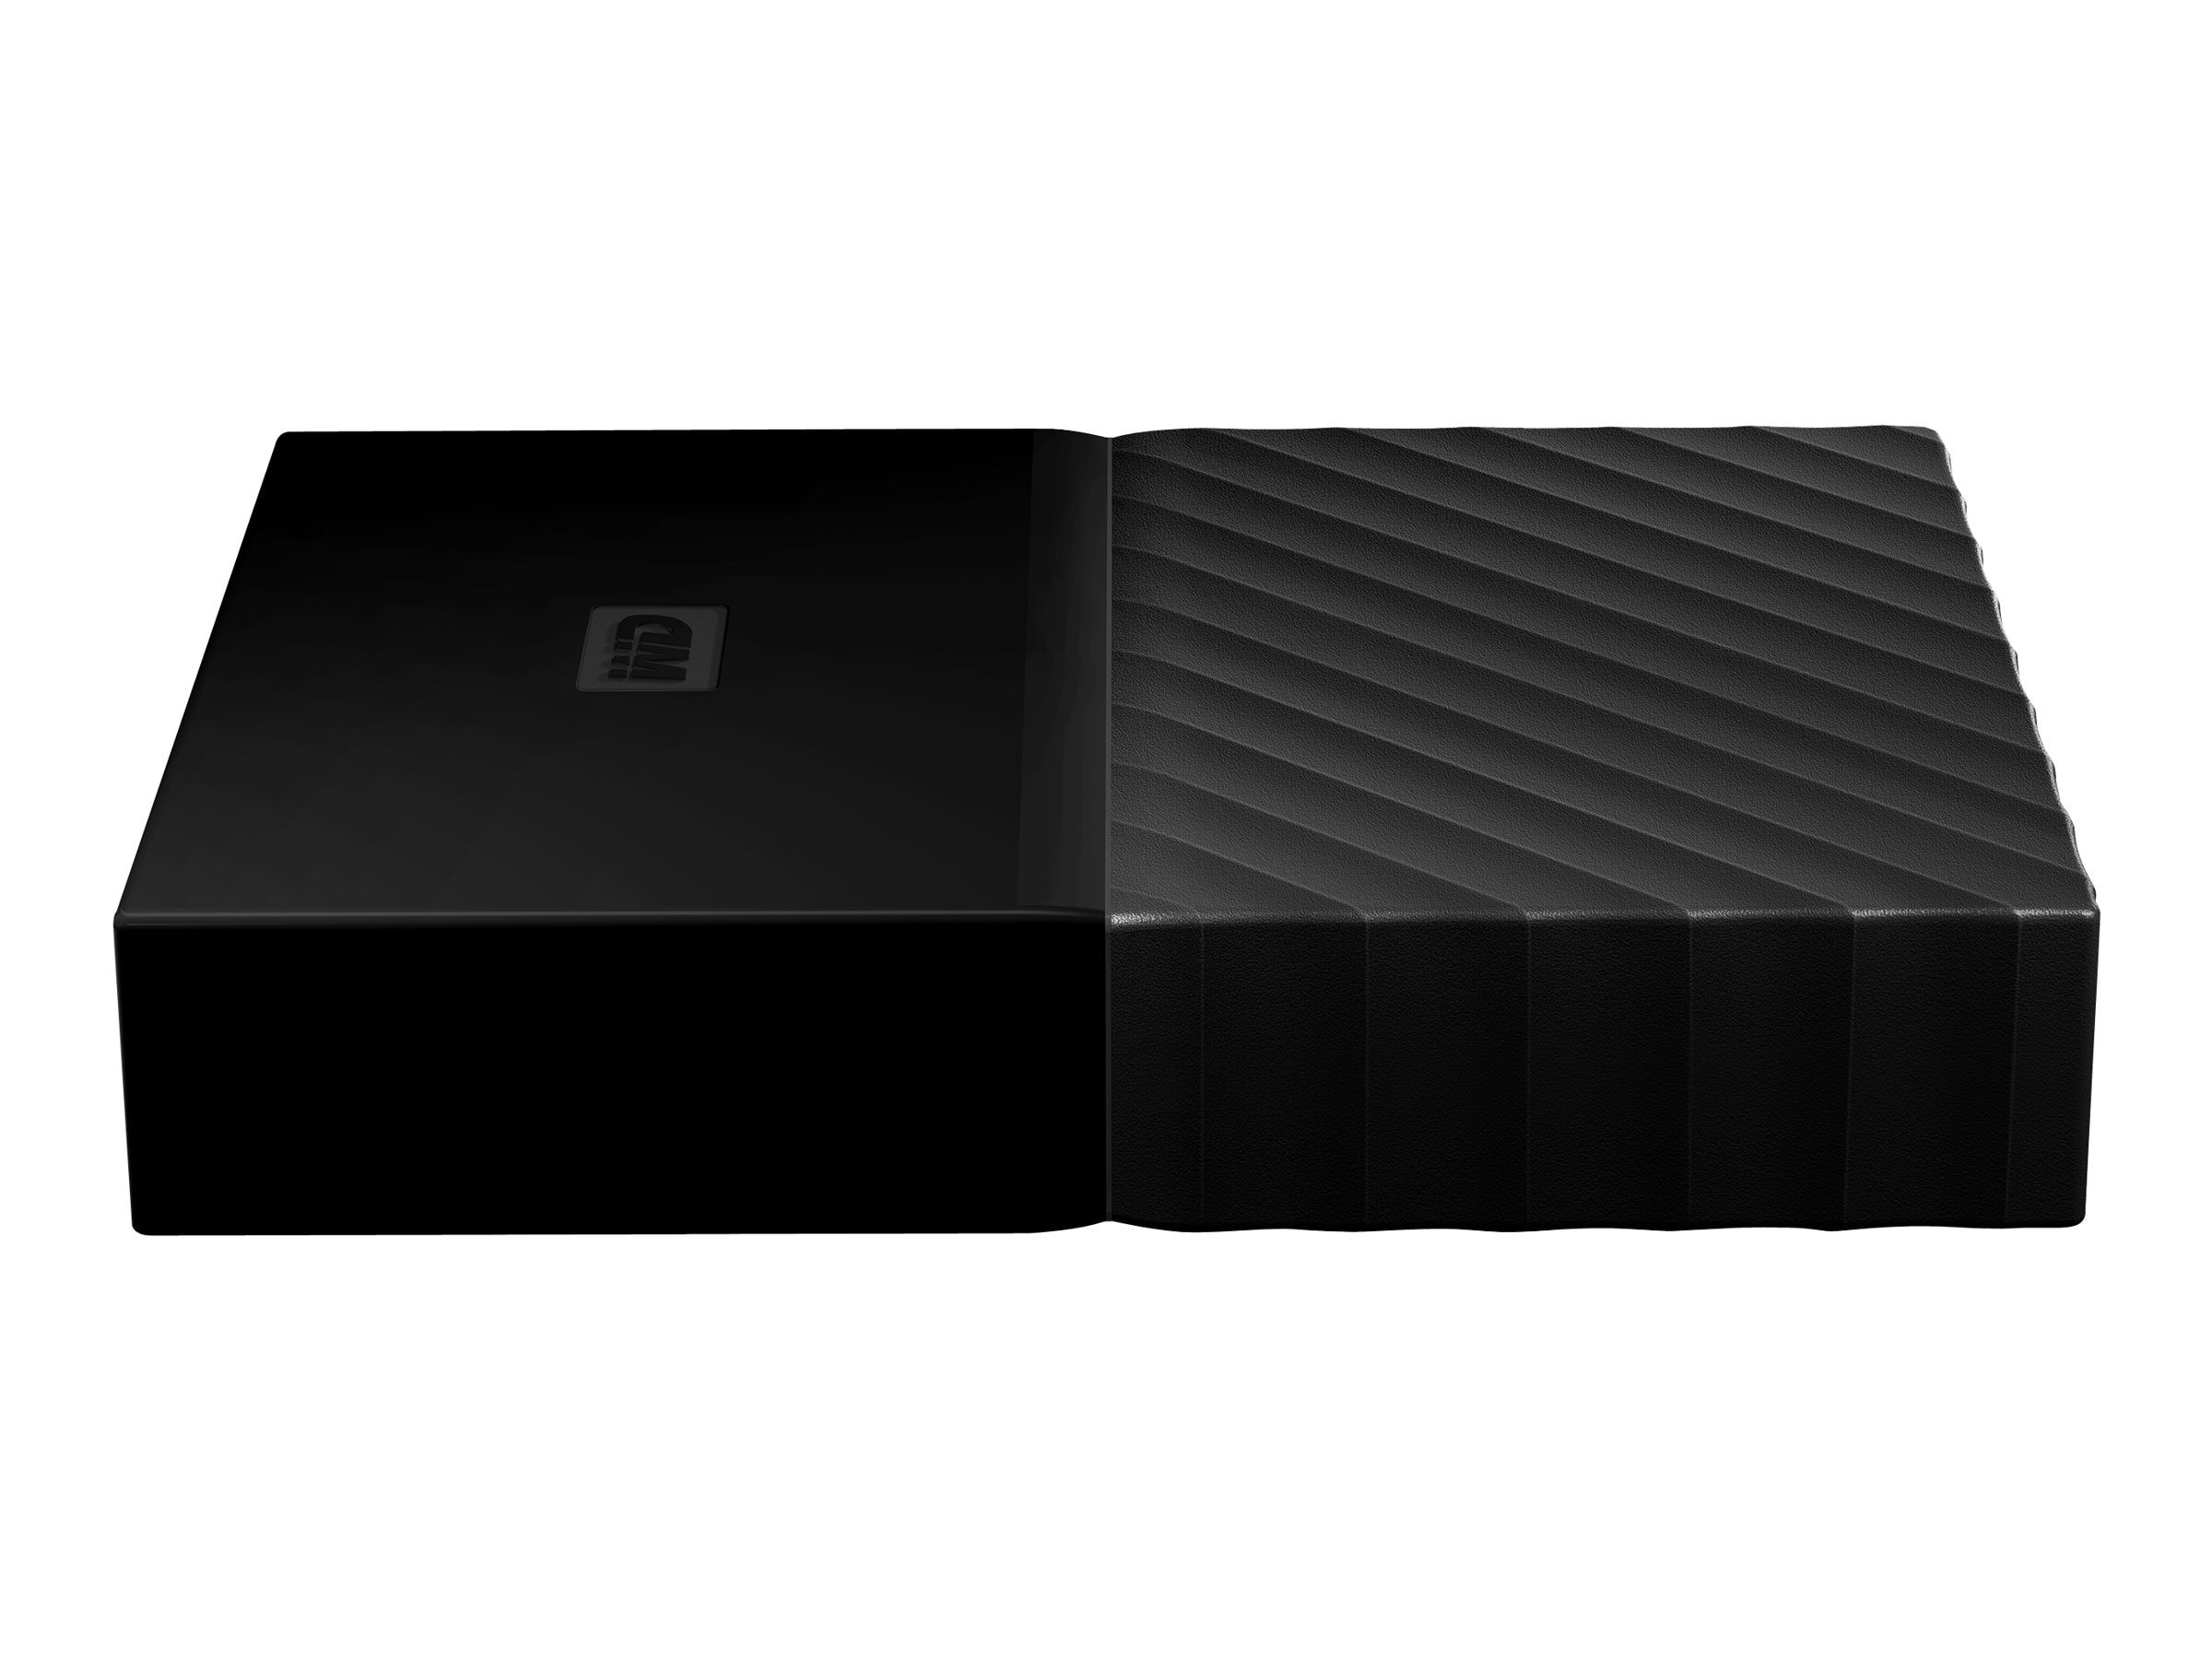 WD 3TB My Passport for Mac Black, WDBP6A0030BBK-WESN